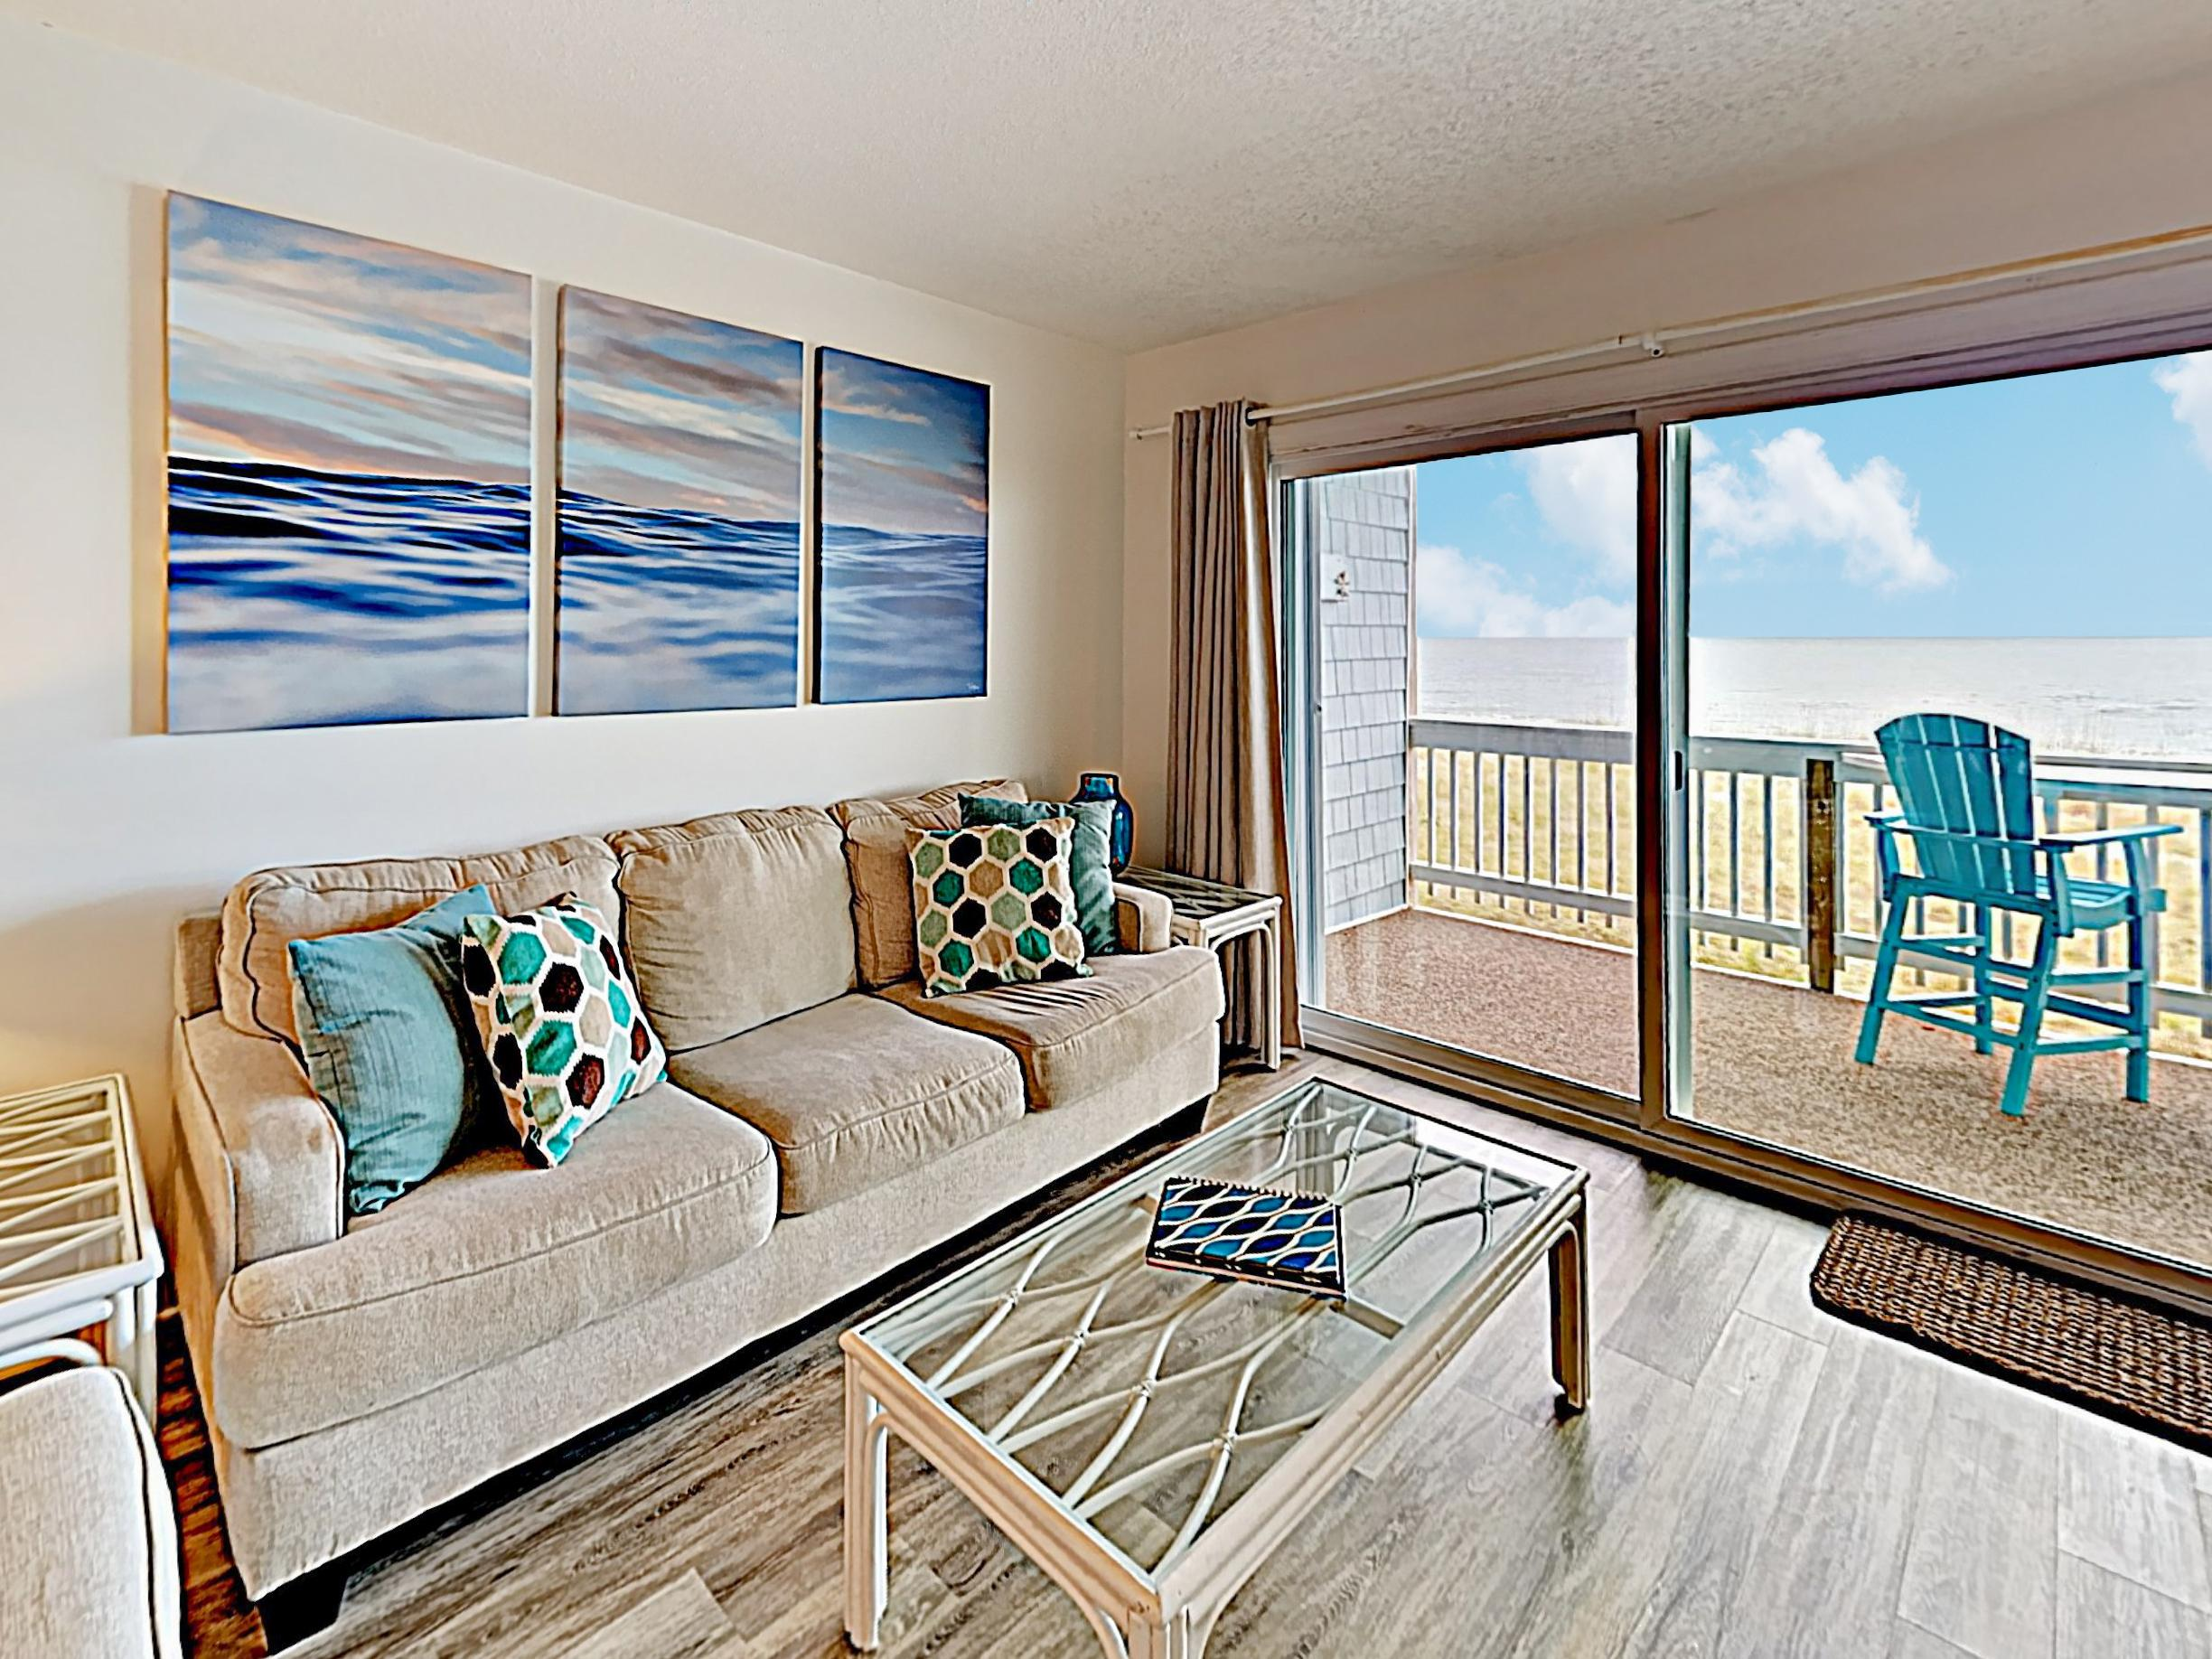 Welcome to Sands III! This condo is professionally managed by TurnKey Vacation Rentals.